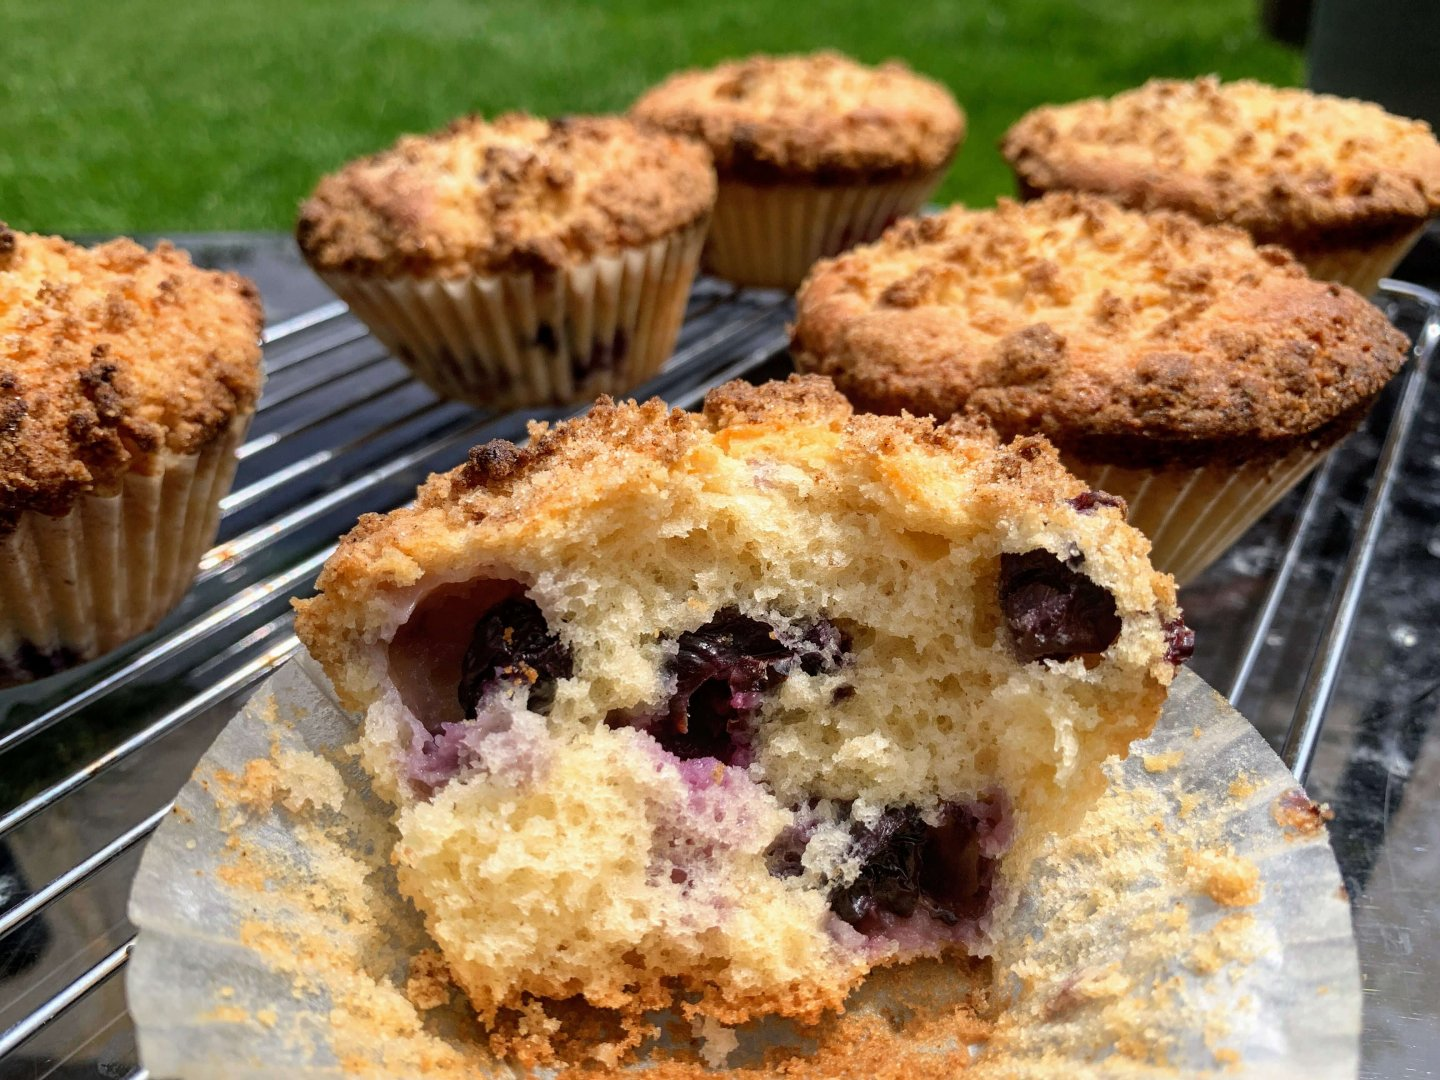 Blueberry crumble sourdough muffins